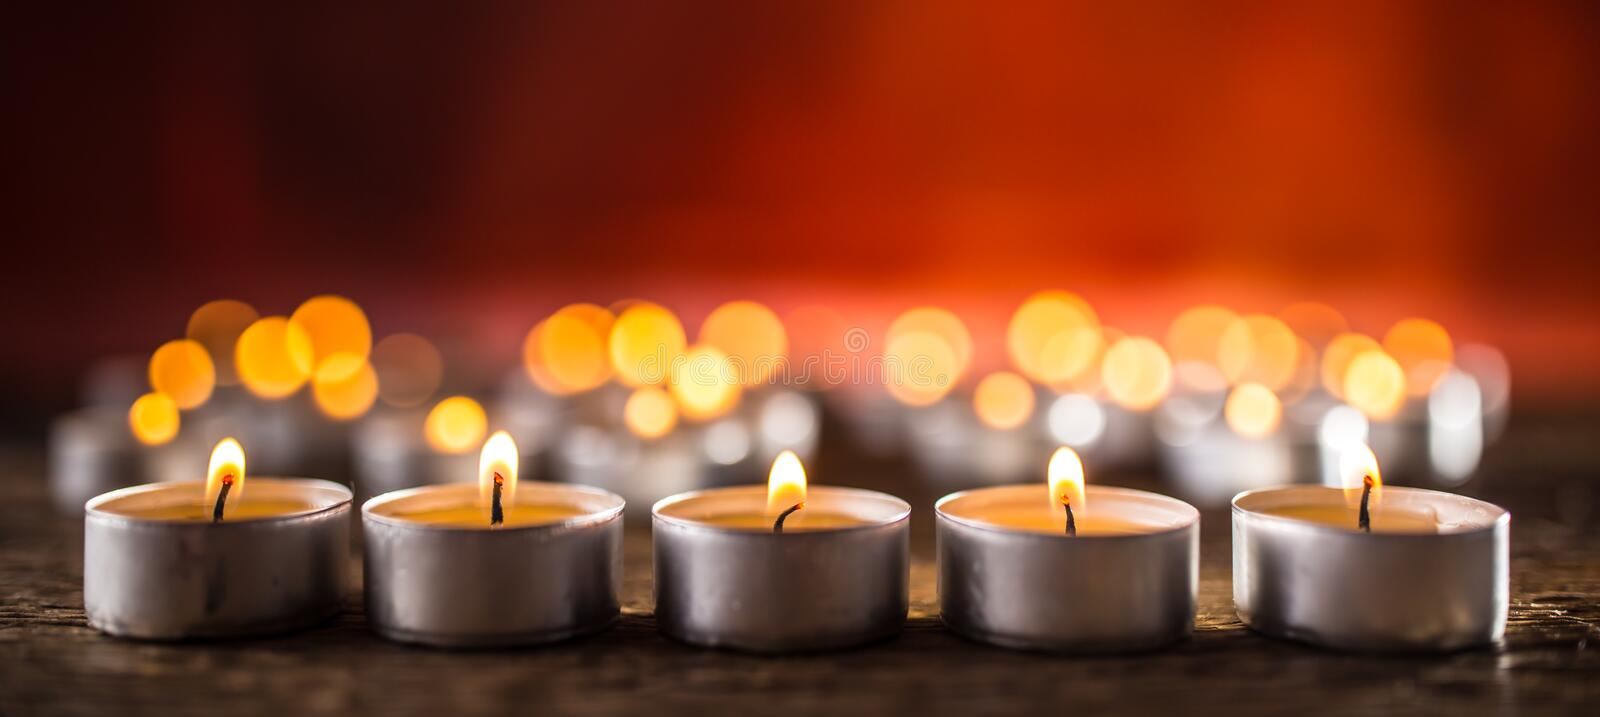 Many candles symolizing funeral religios christmas spa celebration birthday spirituality peace memorial or holiday burning royalty free stock photo